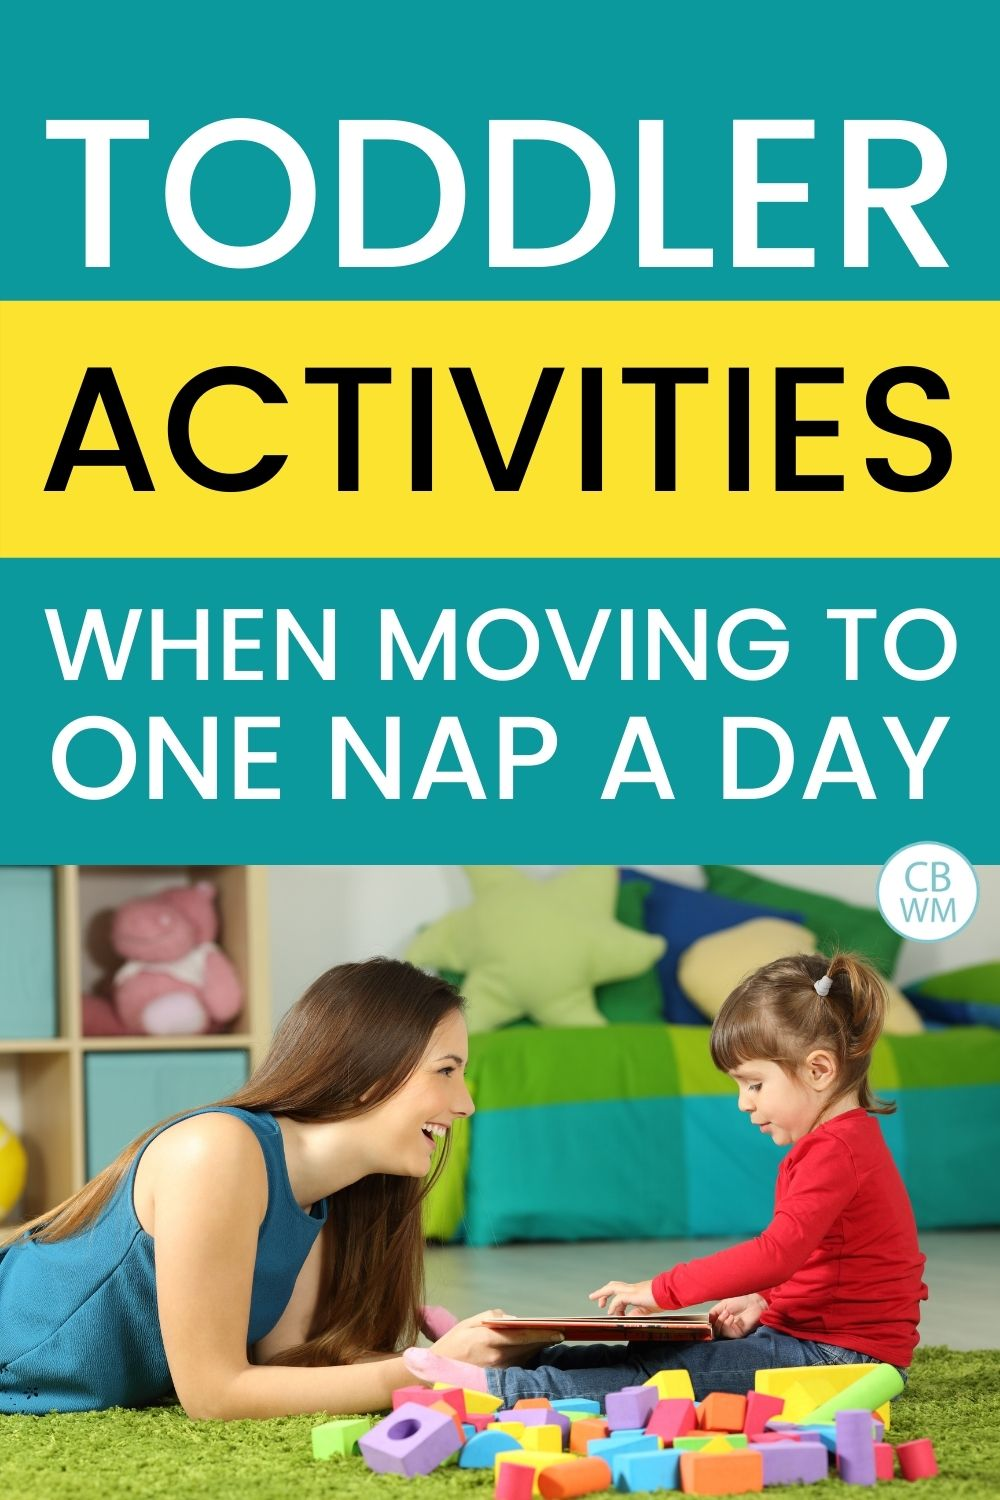 Toddler activities to do each day